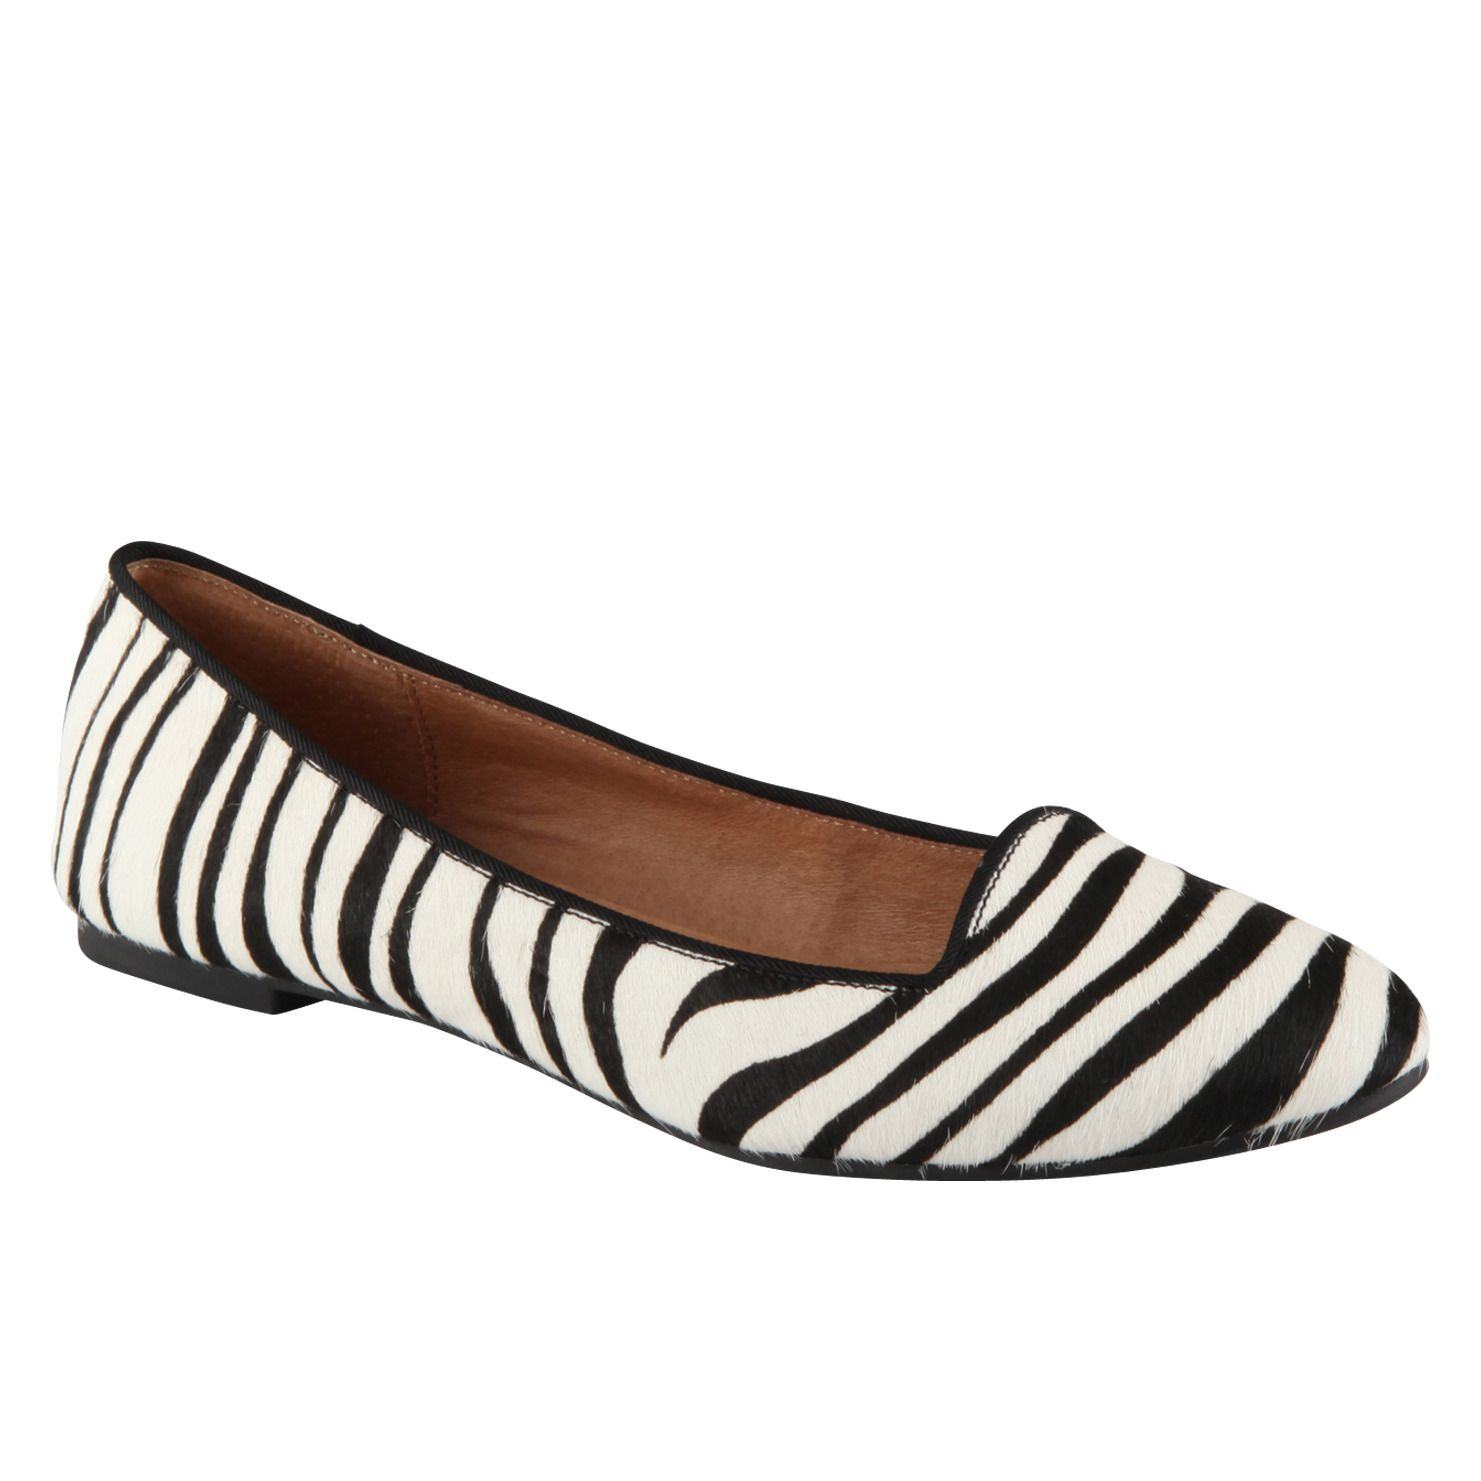 3ba25db1e61 OSTLIE - women s flats shoes for sale at ALDO Shoes. Zebra print loafers!  Change it up and add the zebra in